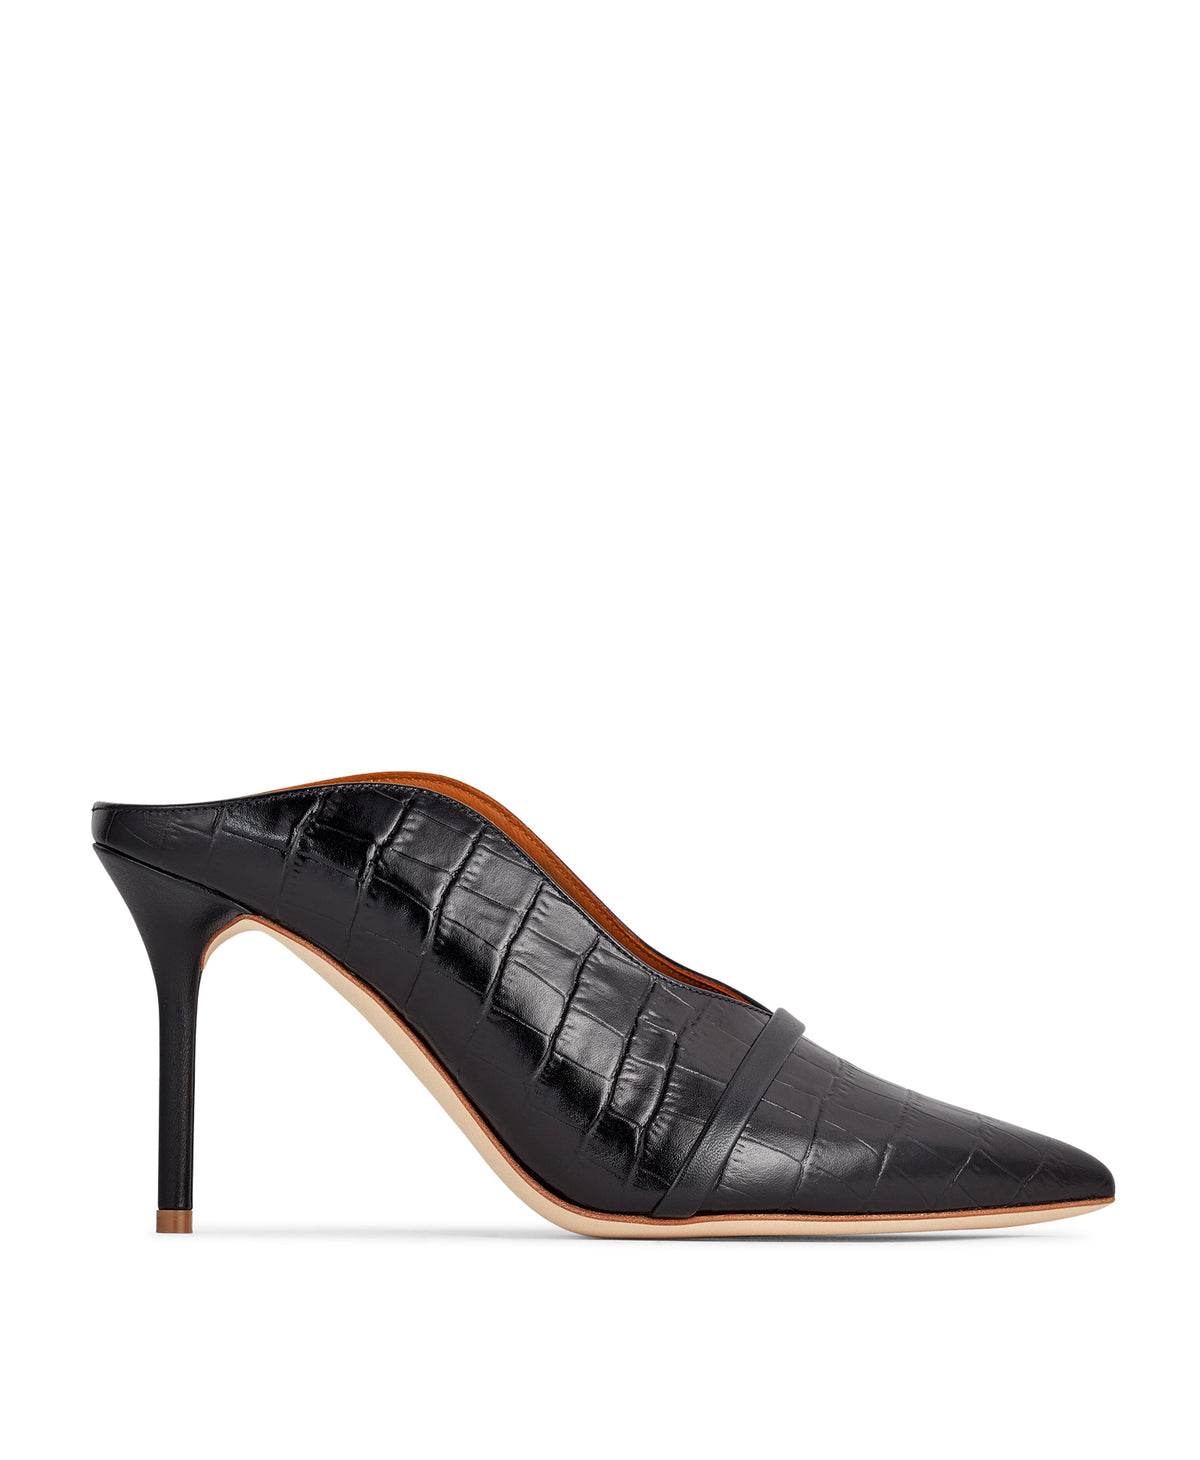 Constance 85mm - Black Croc Printed Leather